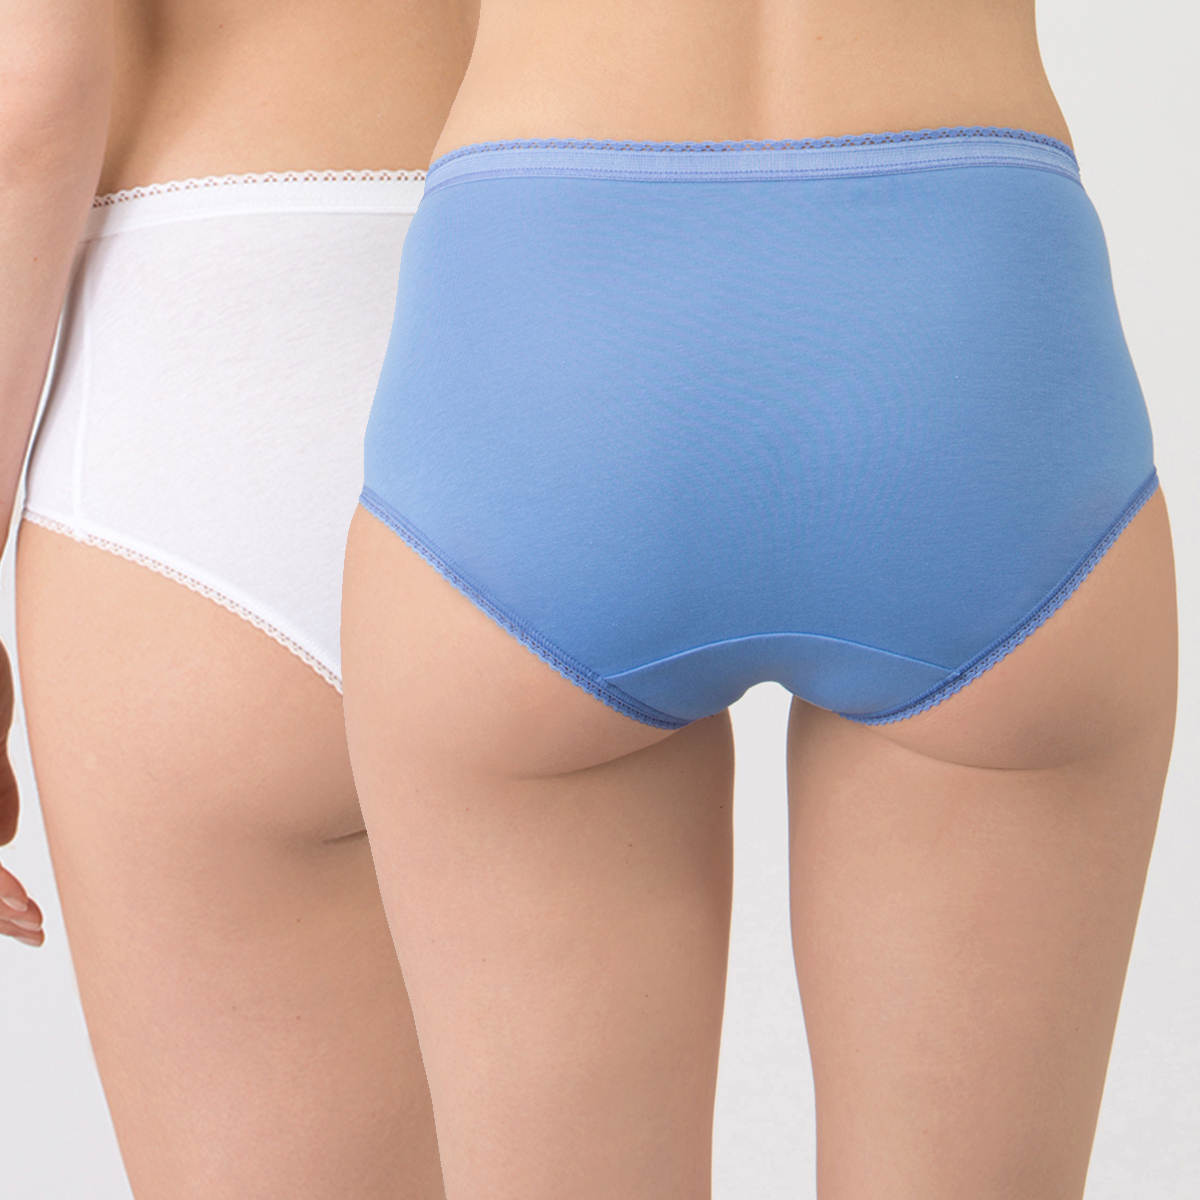 2 Midi Briefs in Blue and  White – Stretch Cotton-PLAYTEX